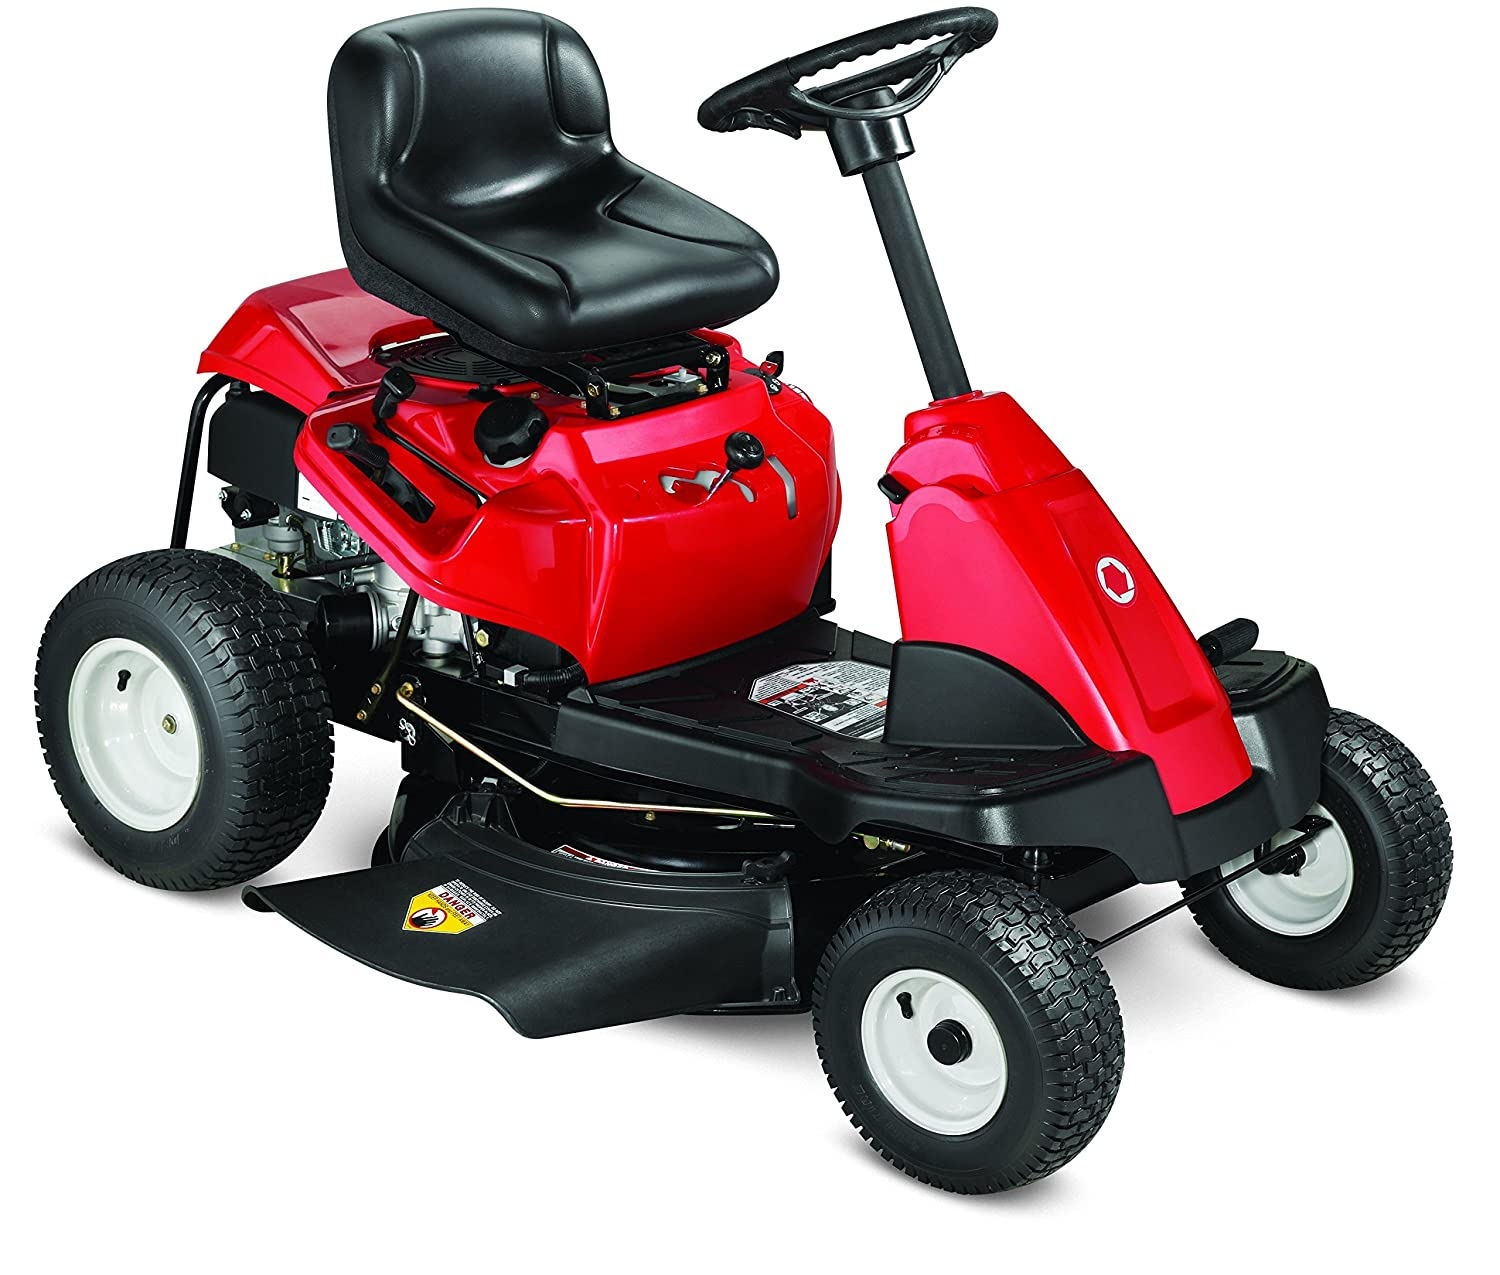 craftsman riding mower craftsman riding mower-craftsman riding lawn mower (review & compare prices 2018) 910m7bkdLyL